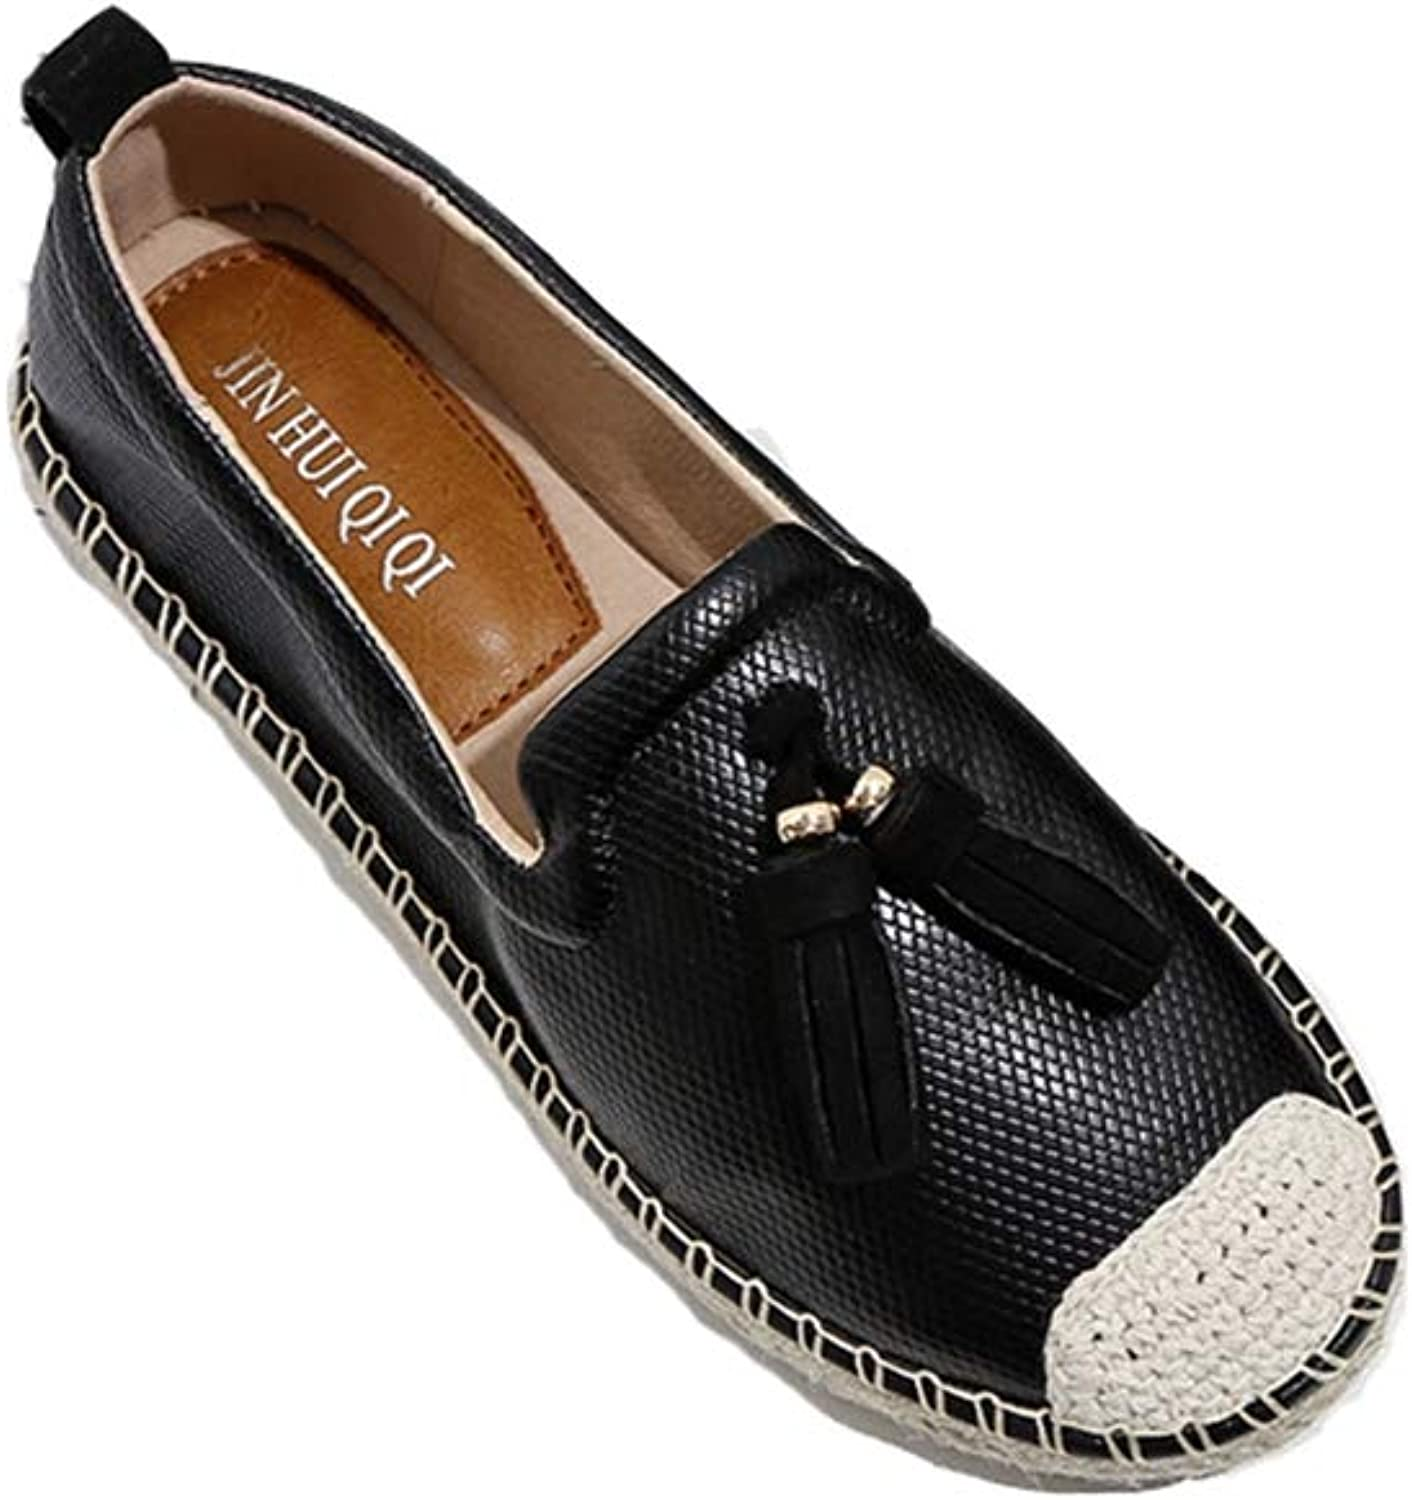 T-JULY Womens's Fashion Slip On Espadrilles Flats shoes Leather Comfortable Loafers Ladies Casual Dress Flat shoes